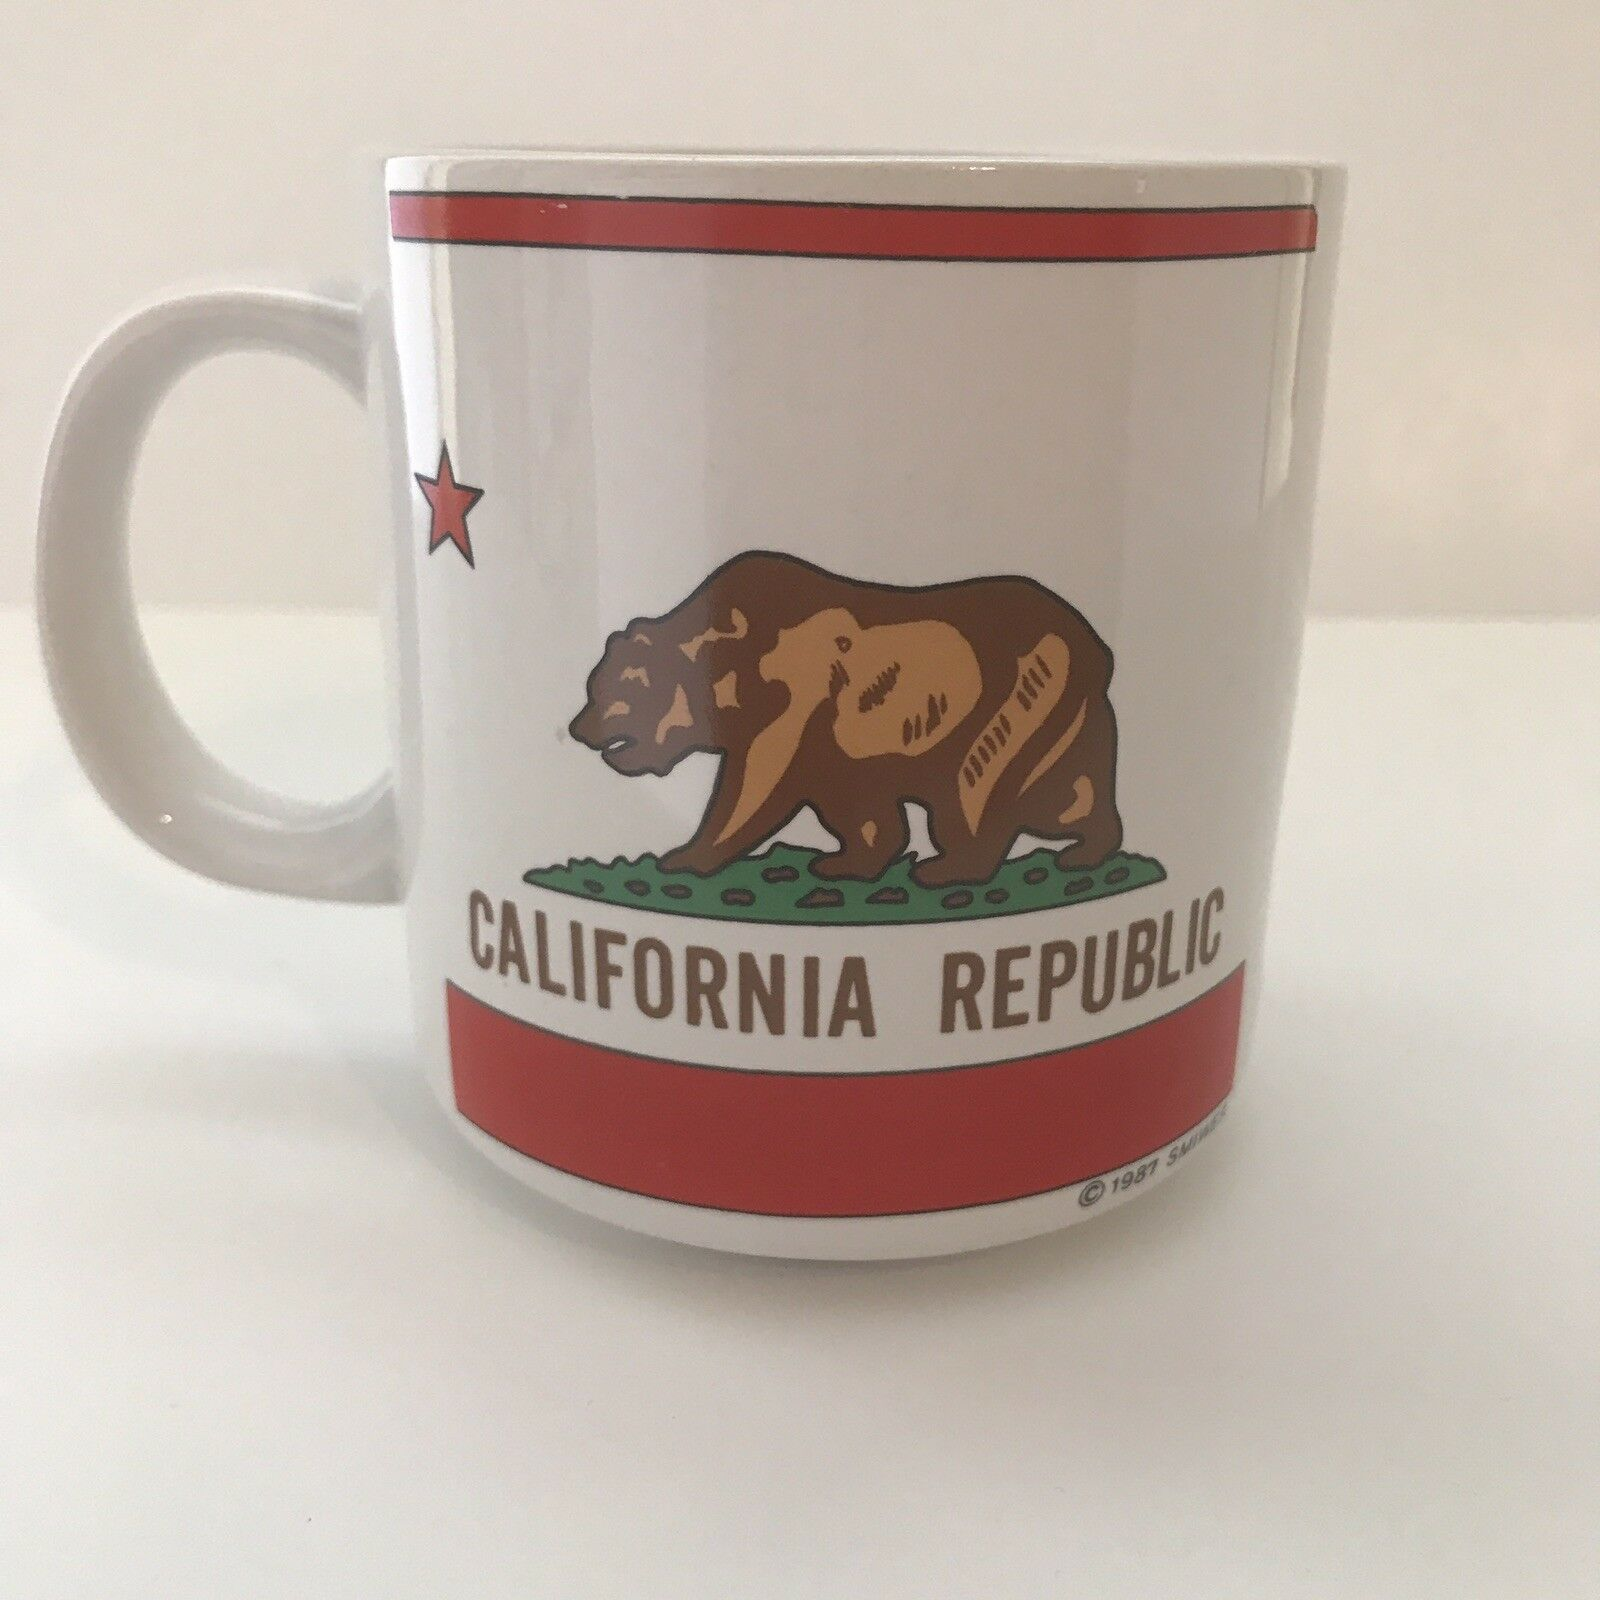 Primary image for California Republic Cup Mug 8 Oz 1987 Smiwes